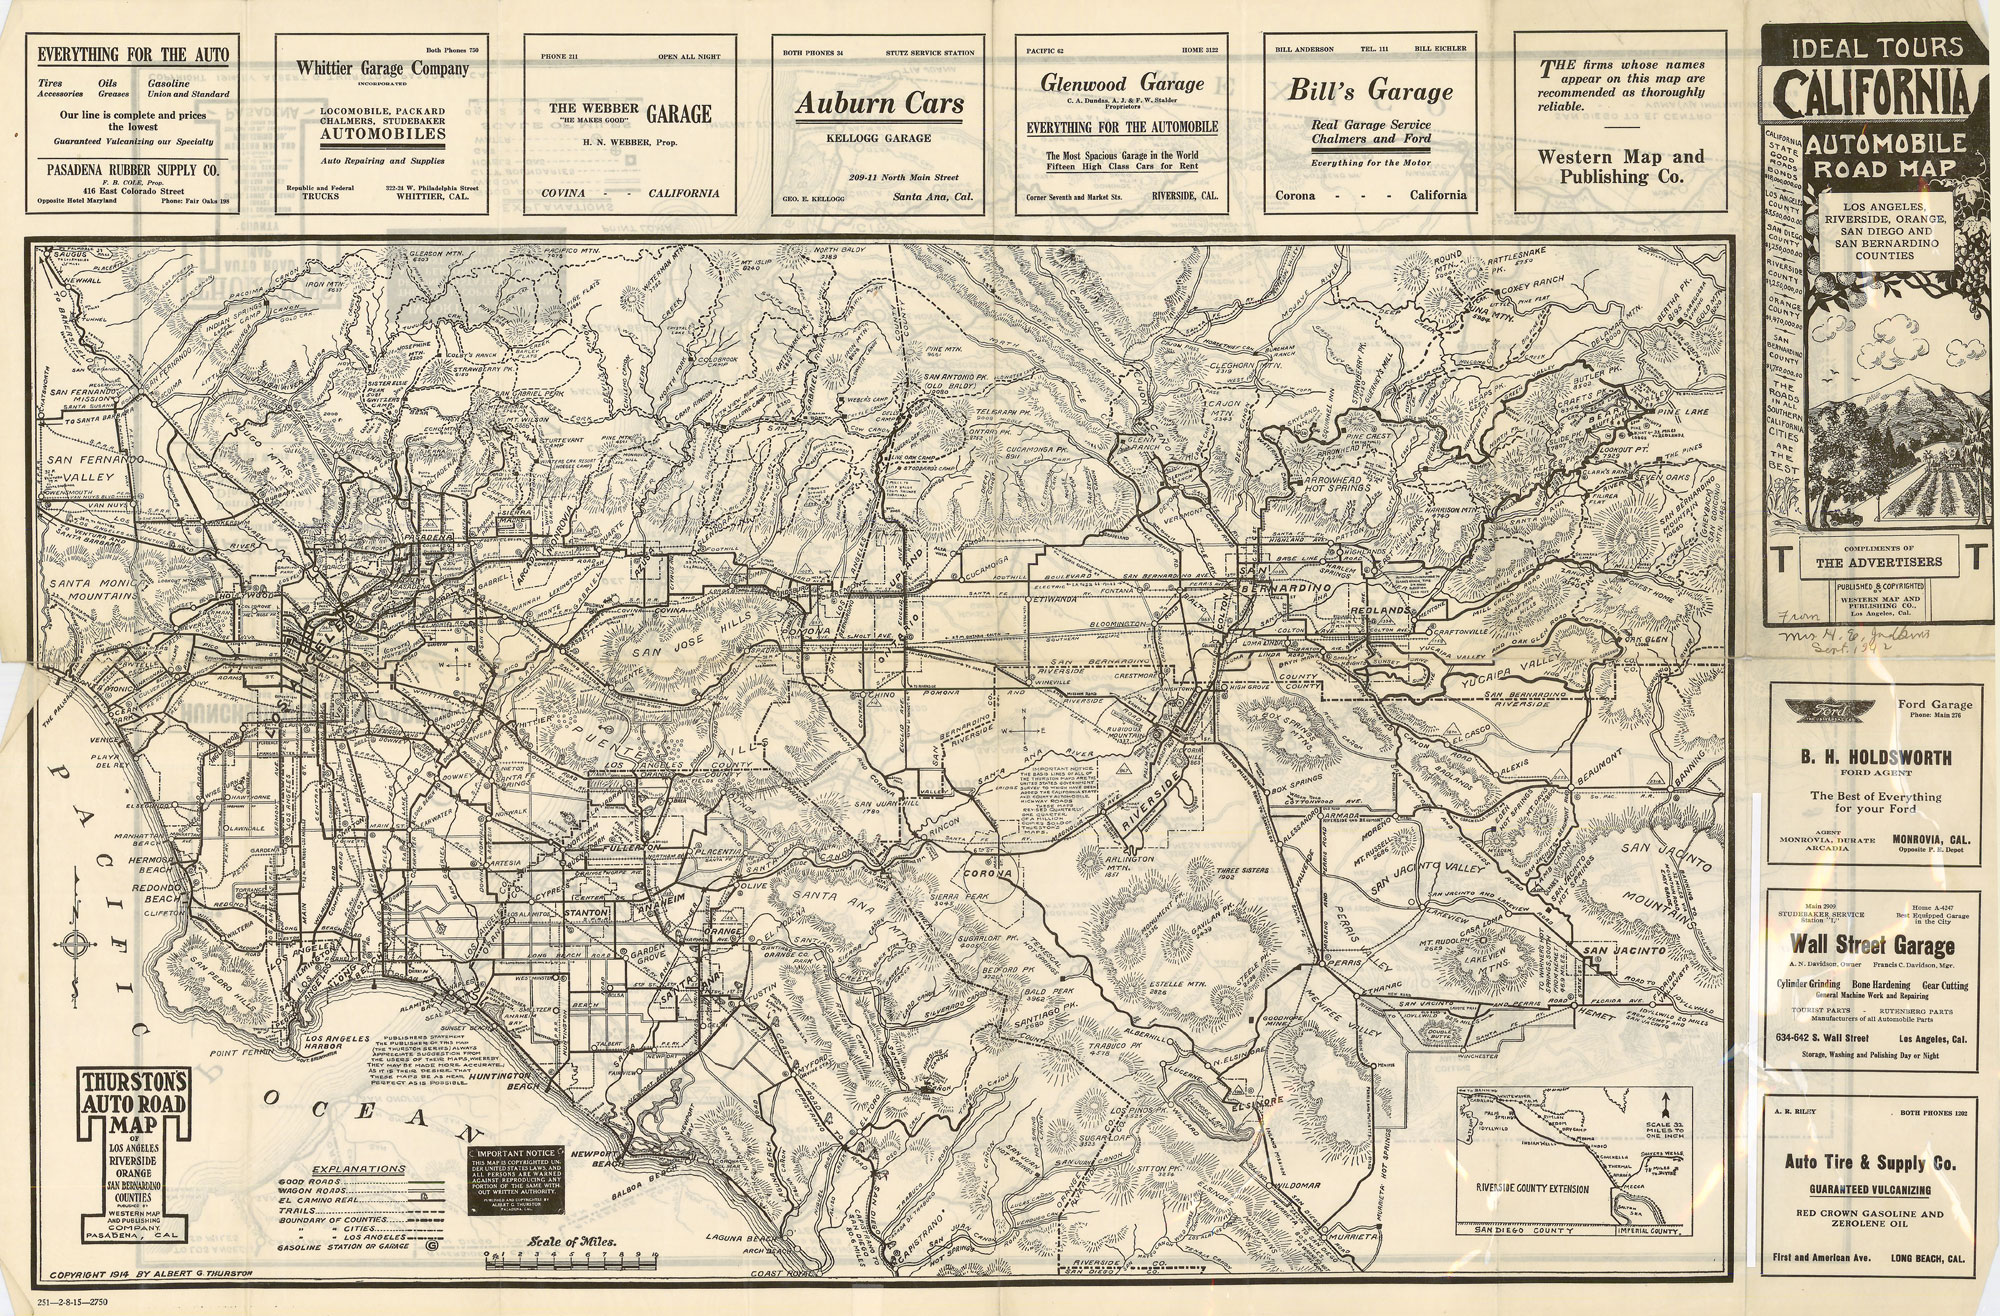 citydig: an auto road map from when l.a. was traffic free